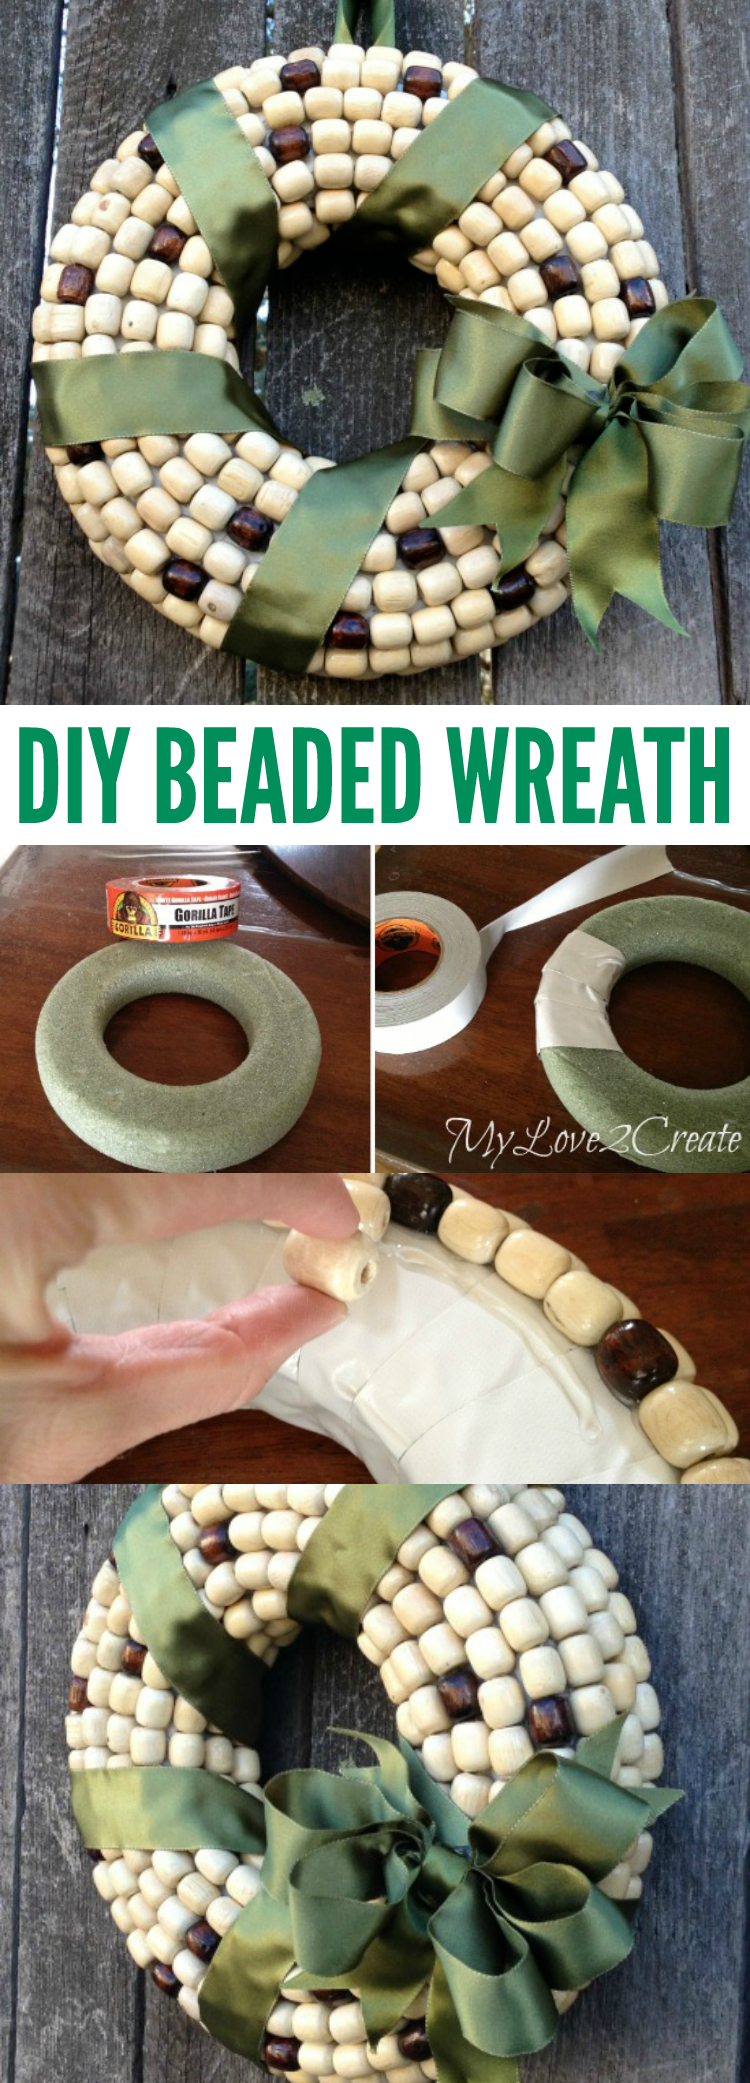 Repurpose extra beads with glue and ribbon into a pretty DIY Beaded Wreath | My Love 2 Create for OHMY-CREATIVE.COM